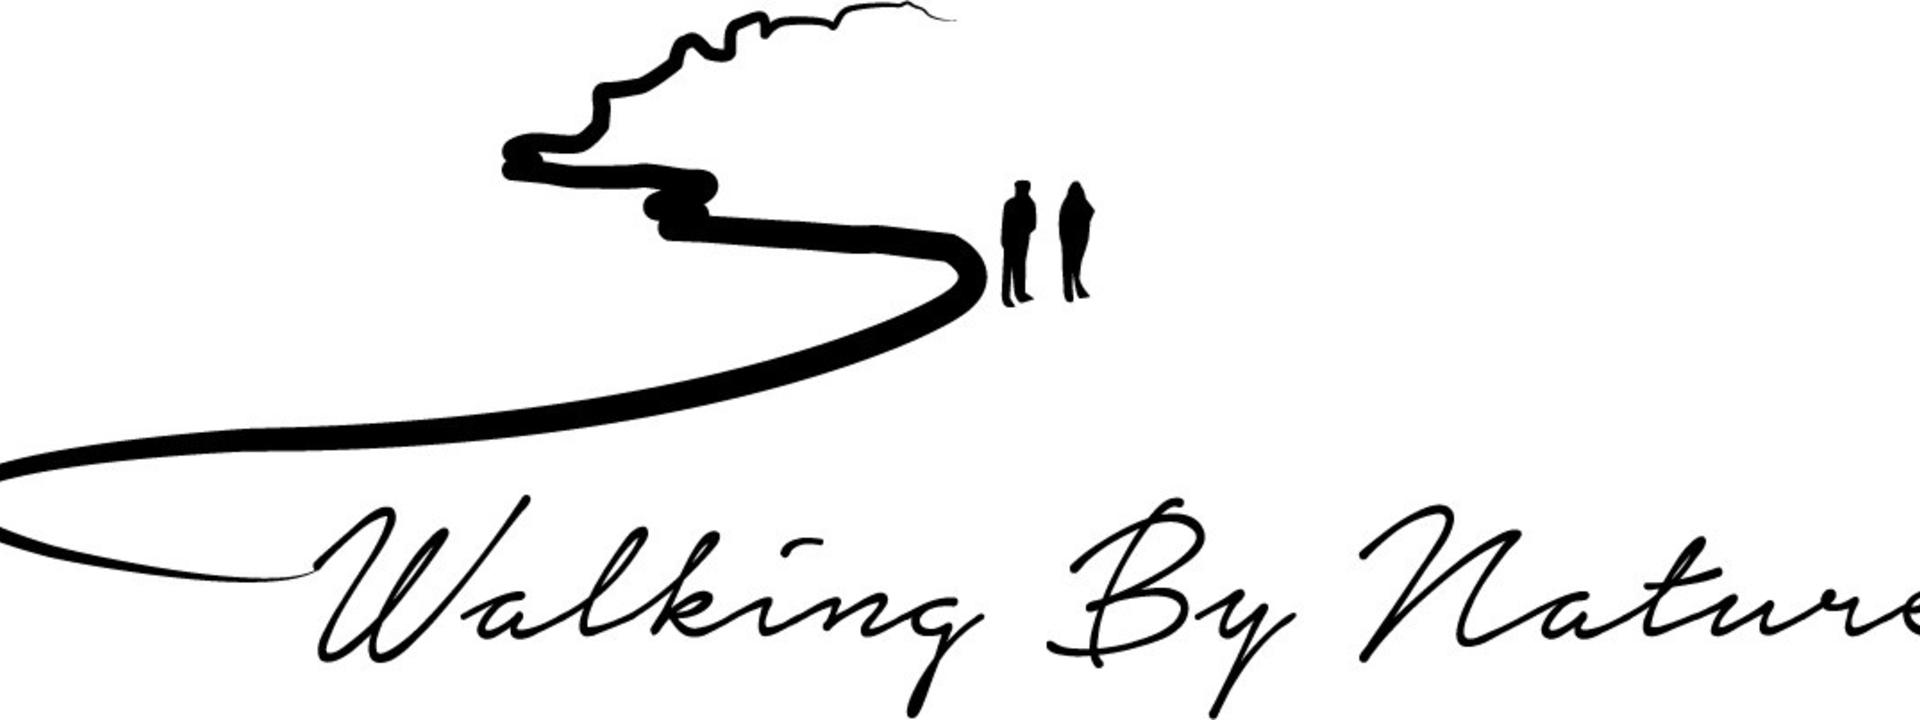 Logo: WalkingbyNature